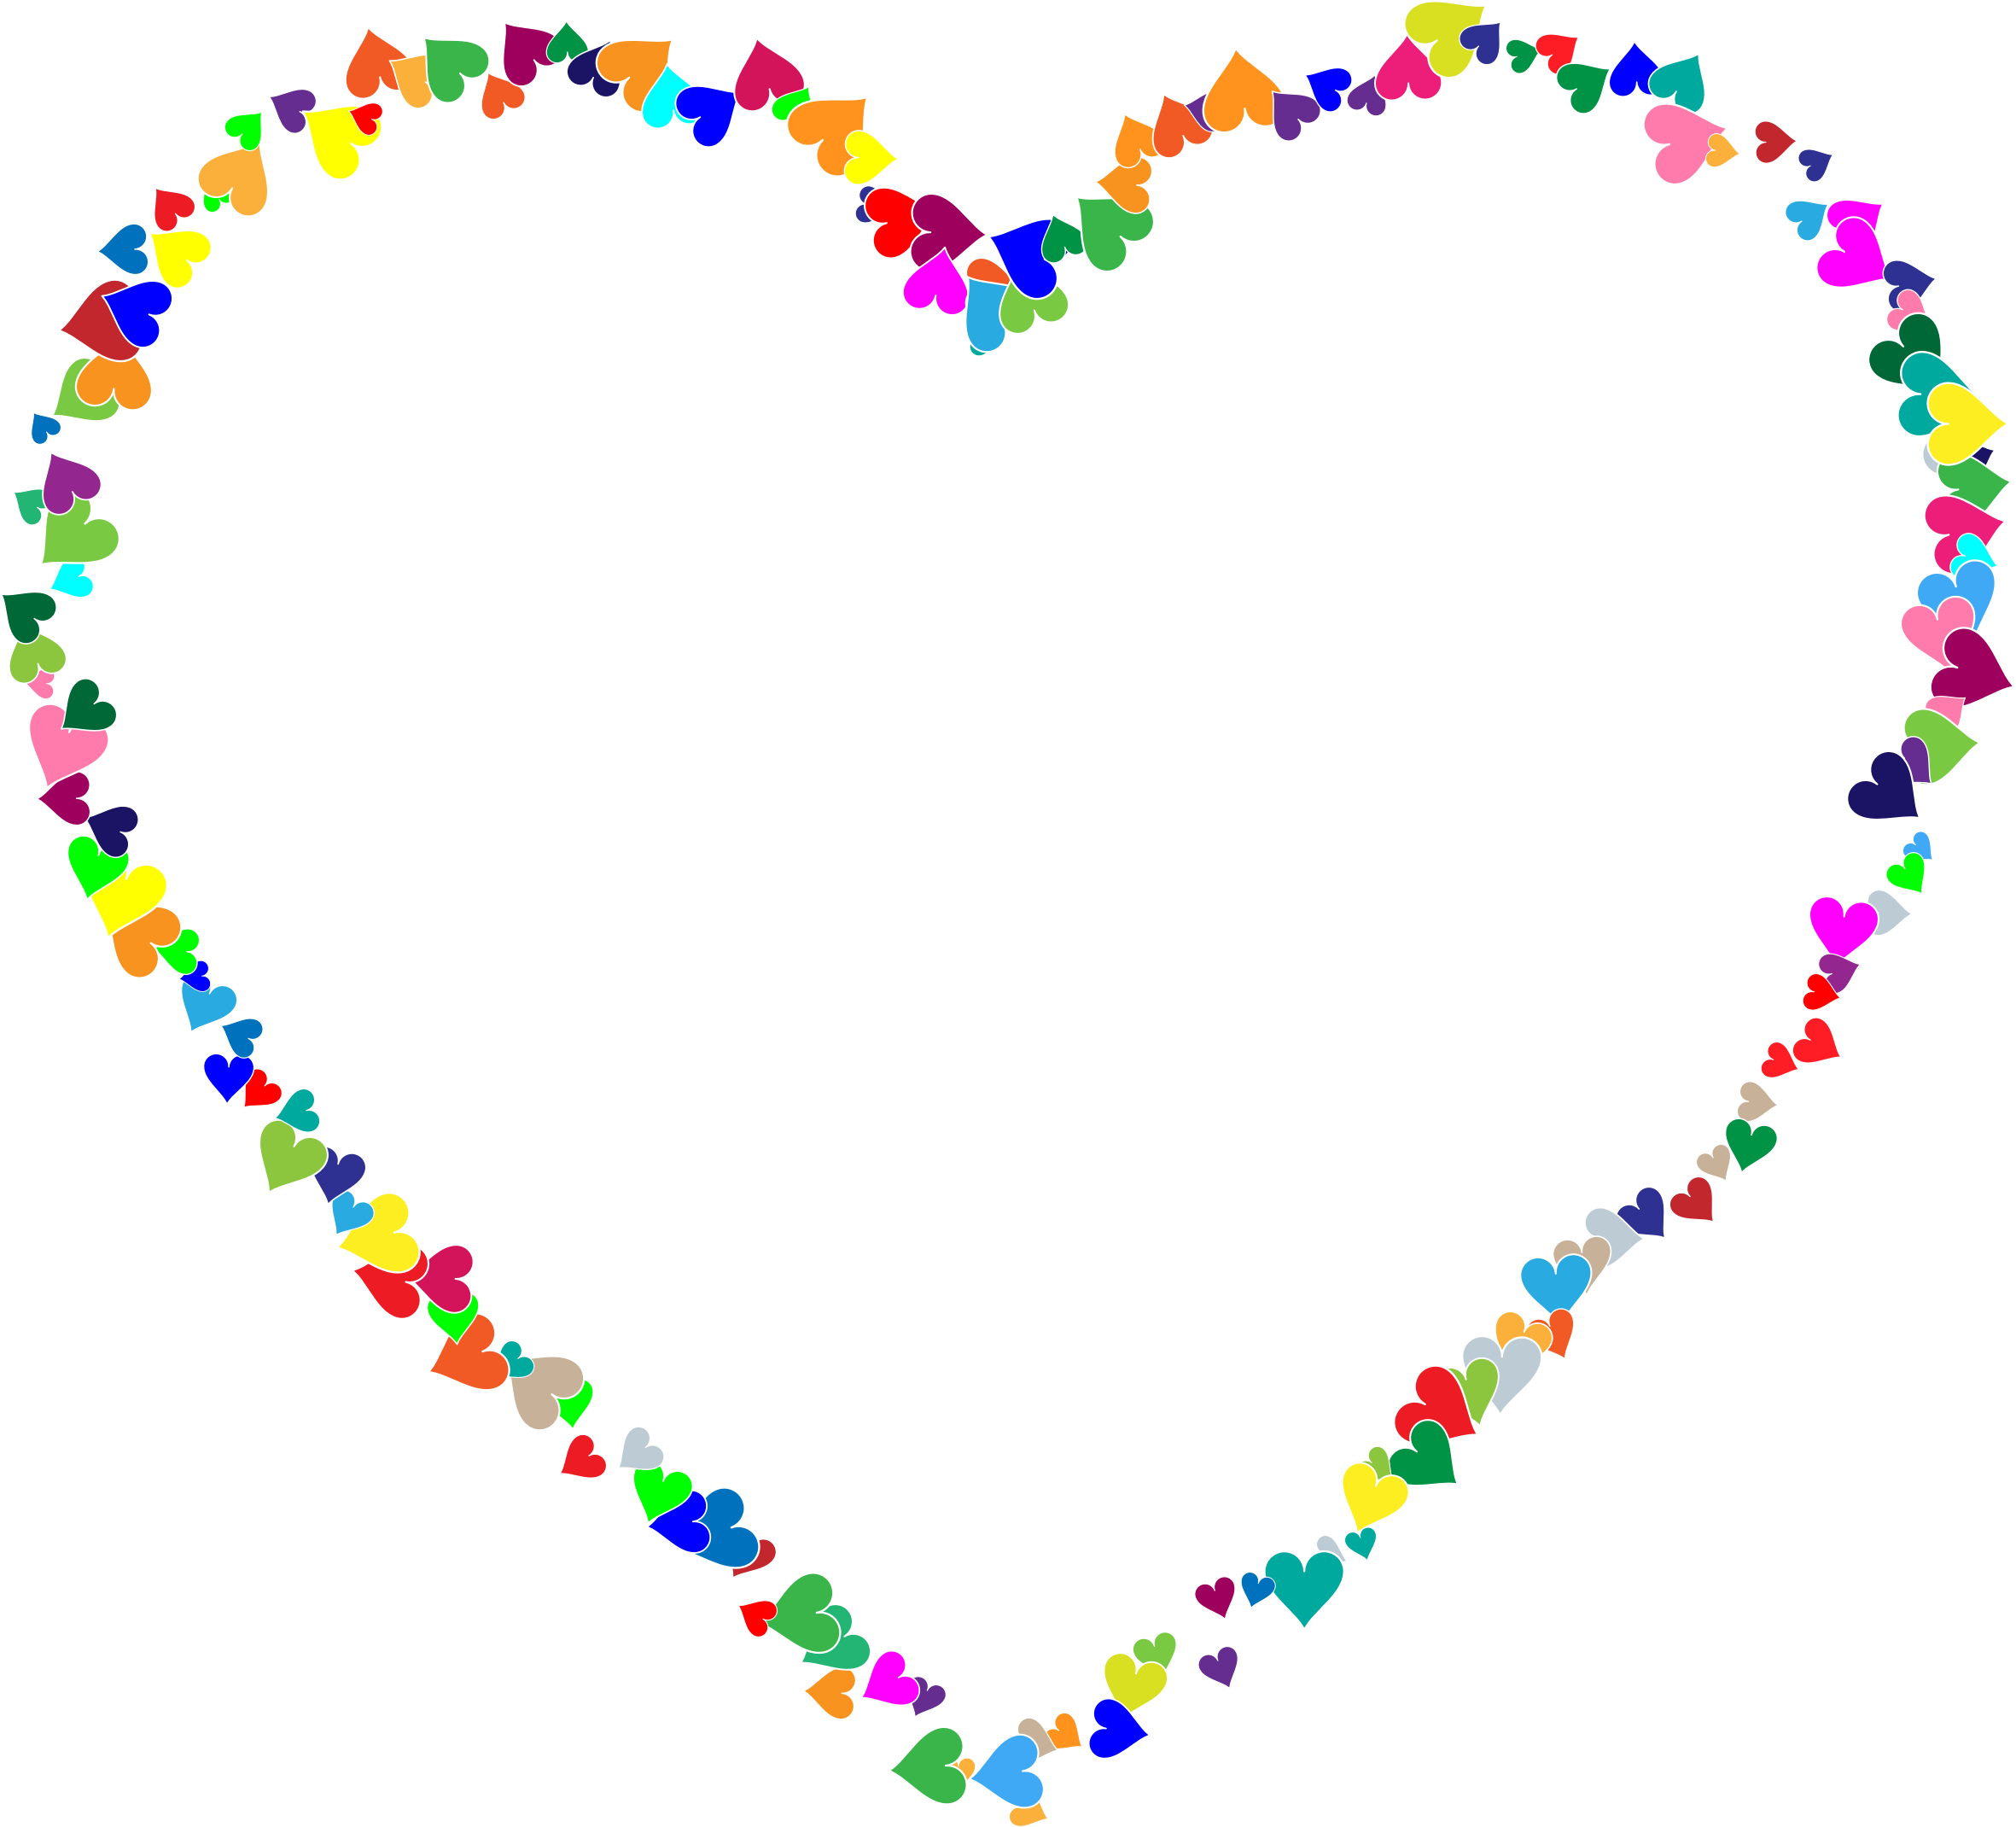 Colorful big image png. Clipart hearts frame